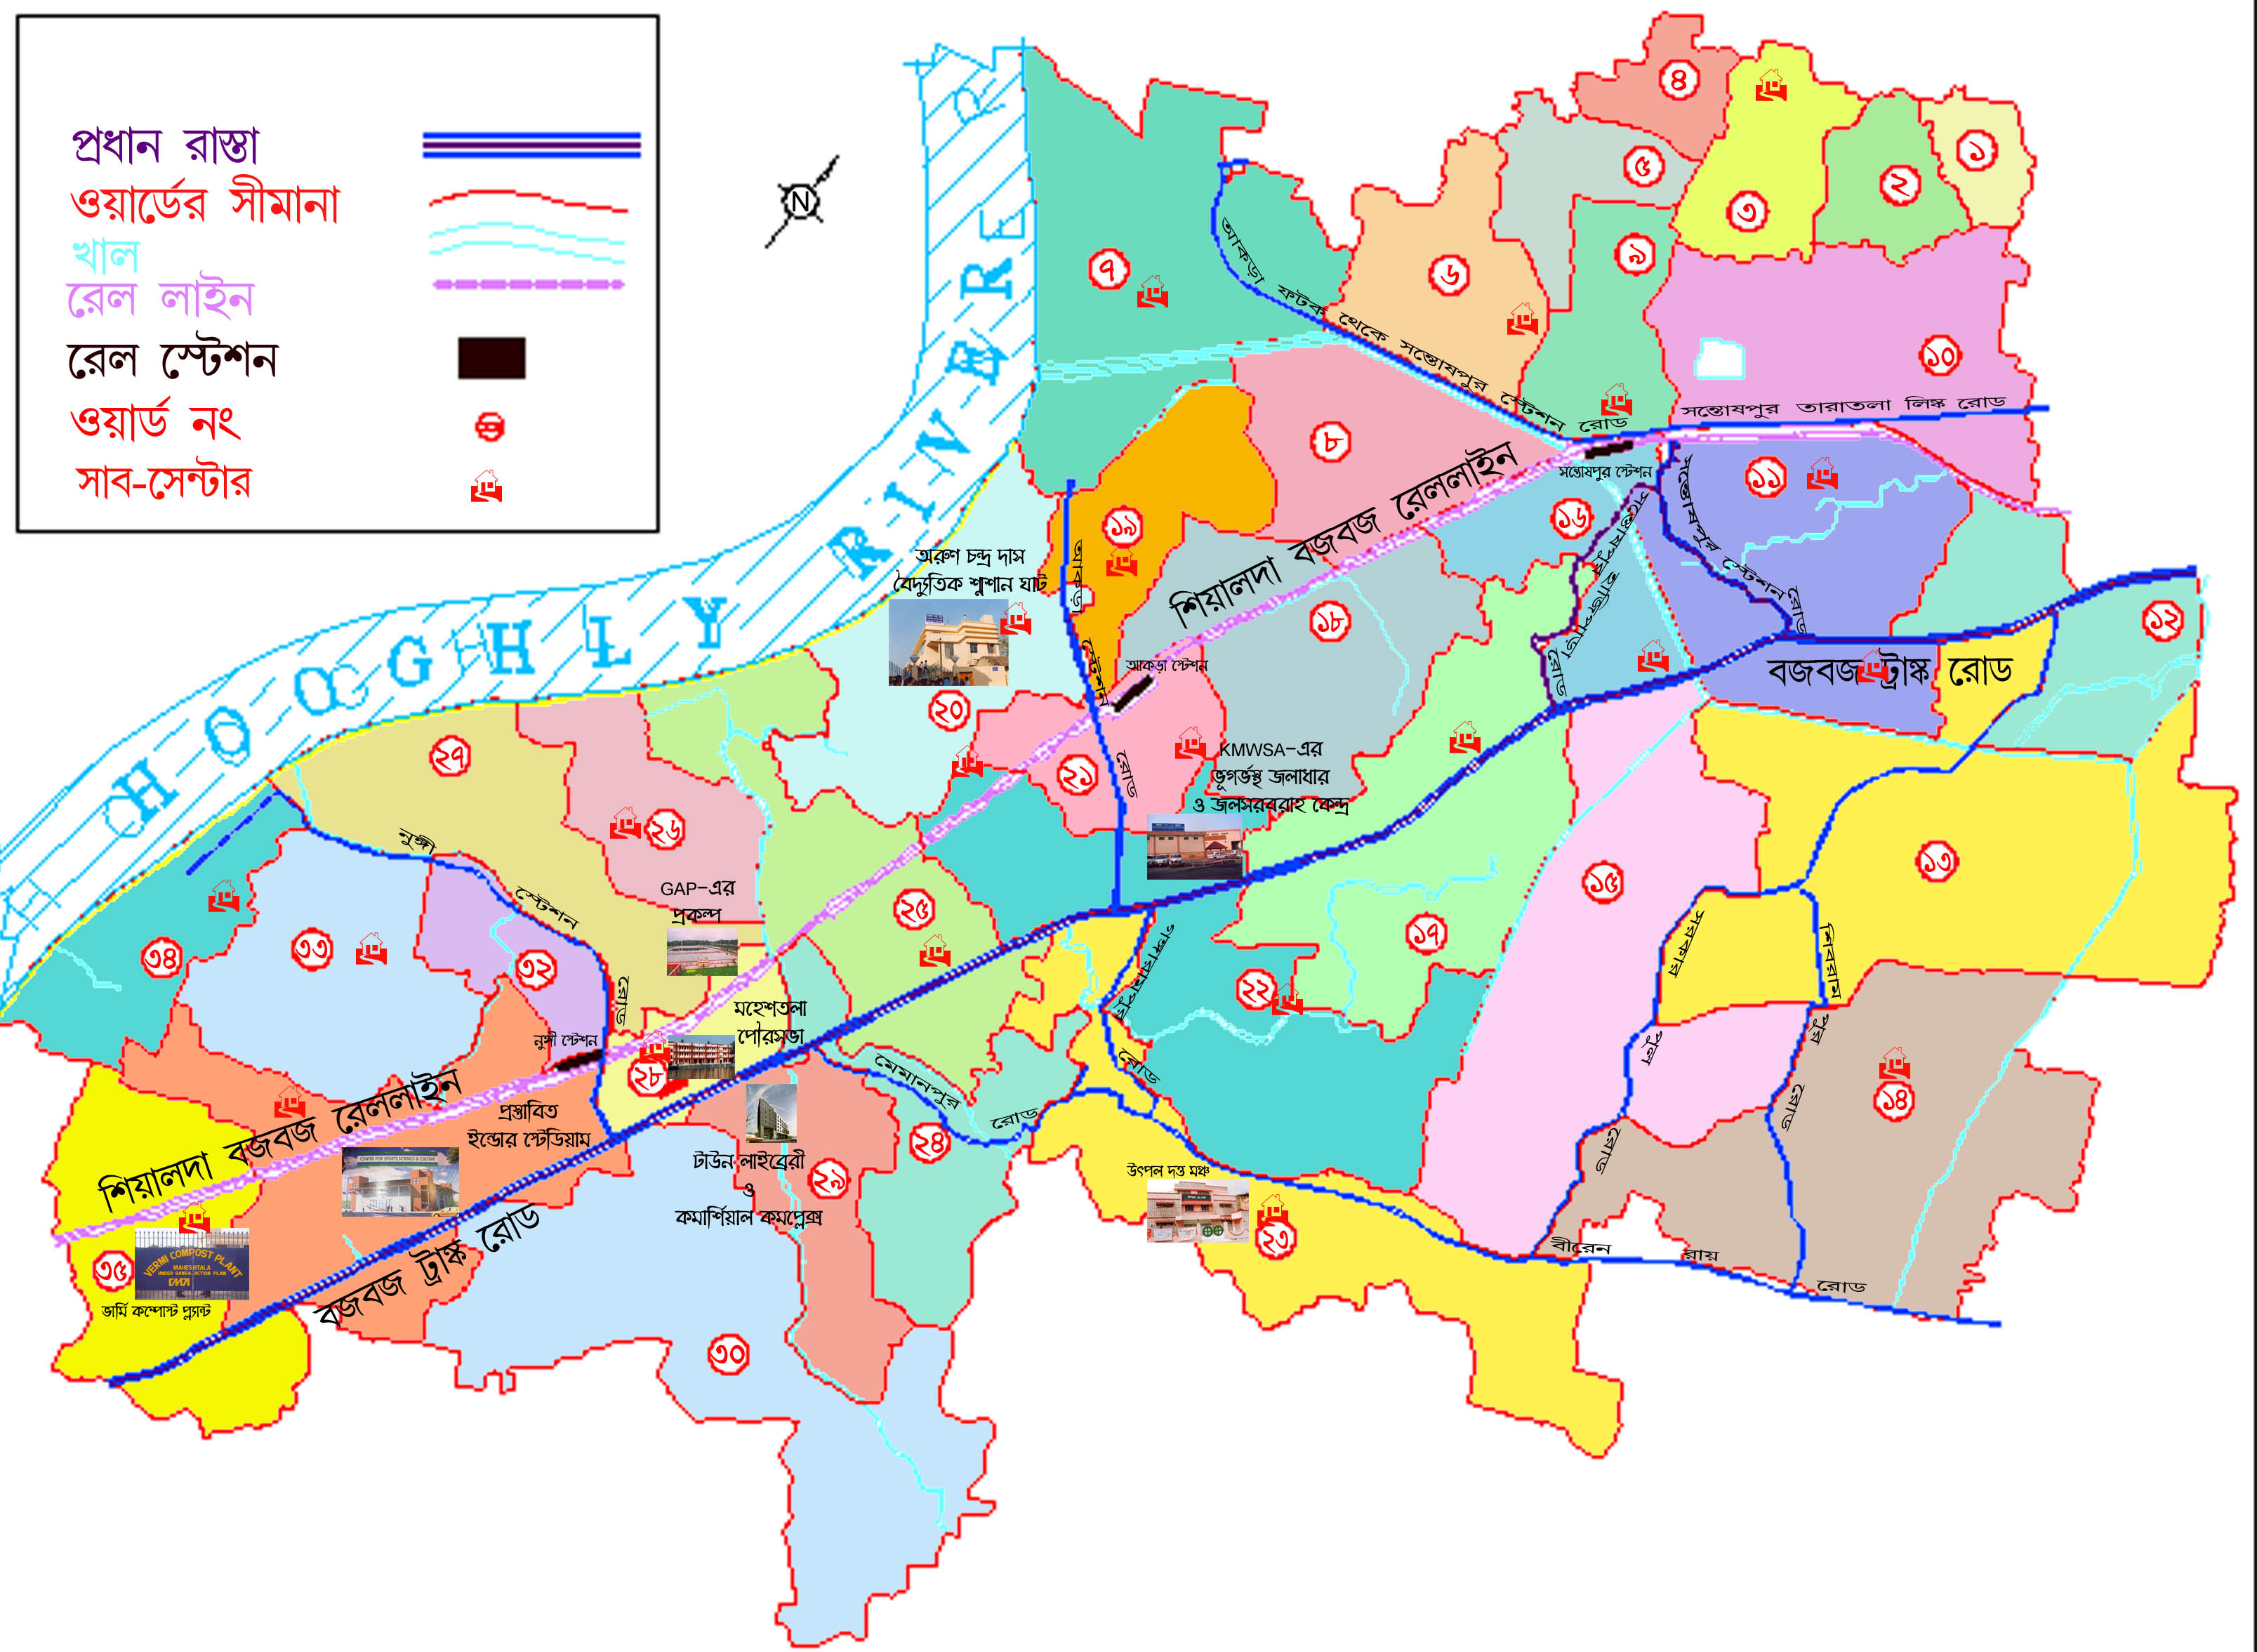 Welcome to maheshtalamunility.org on system map, kaiserslautern military community map, kilauea military camp map, kern medical center map, thule map, cst map, diablo map, easton map, delta map, arrow map, hutchinson map, odyssey map, pioneer map, kaiserslautern germany map, garmin map, crazy map, platinum map, fox map, vision map, goodyear map,